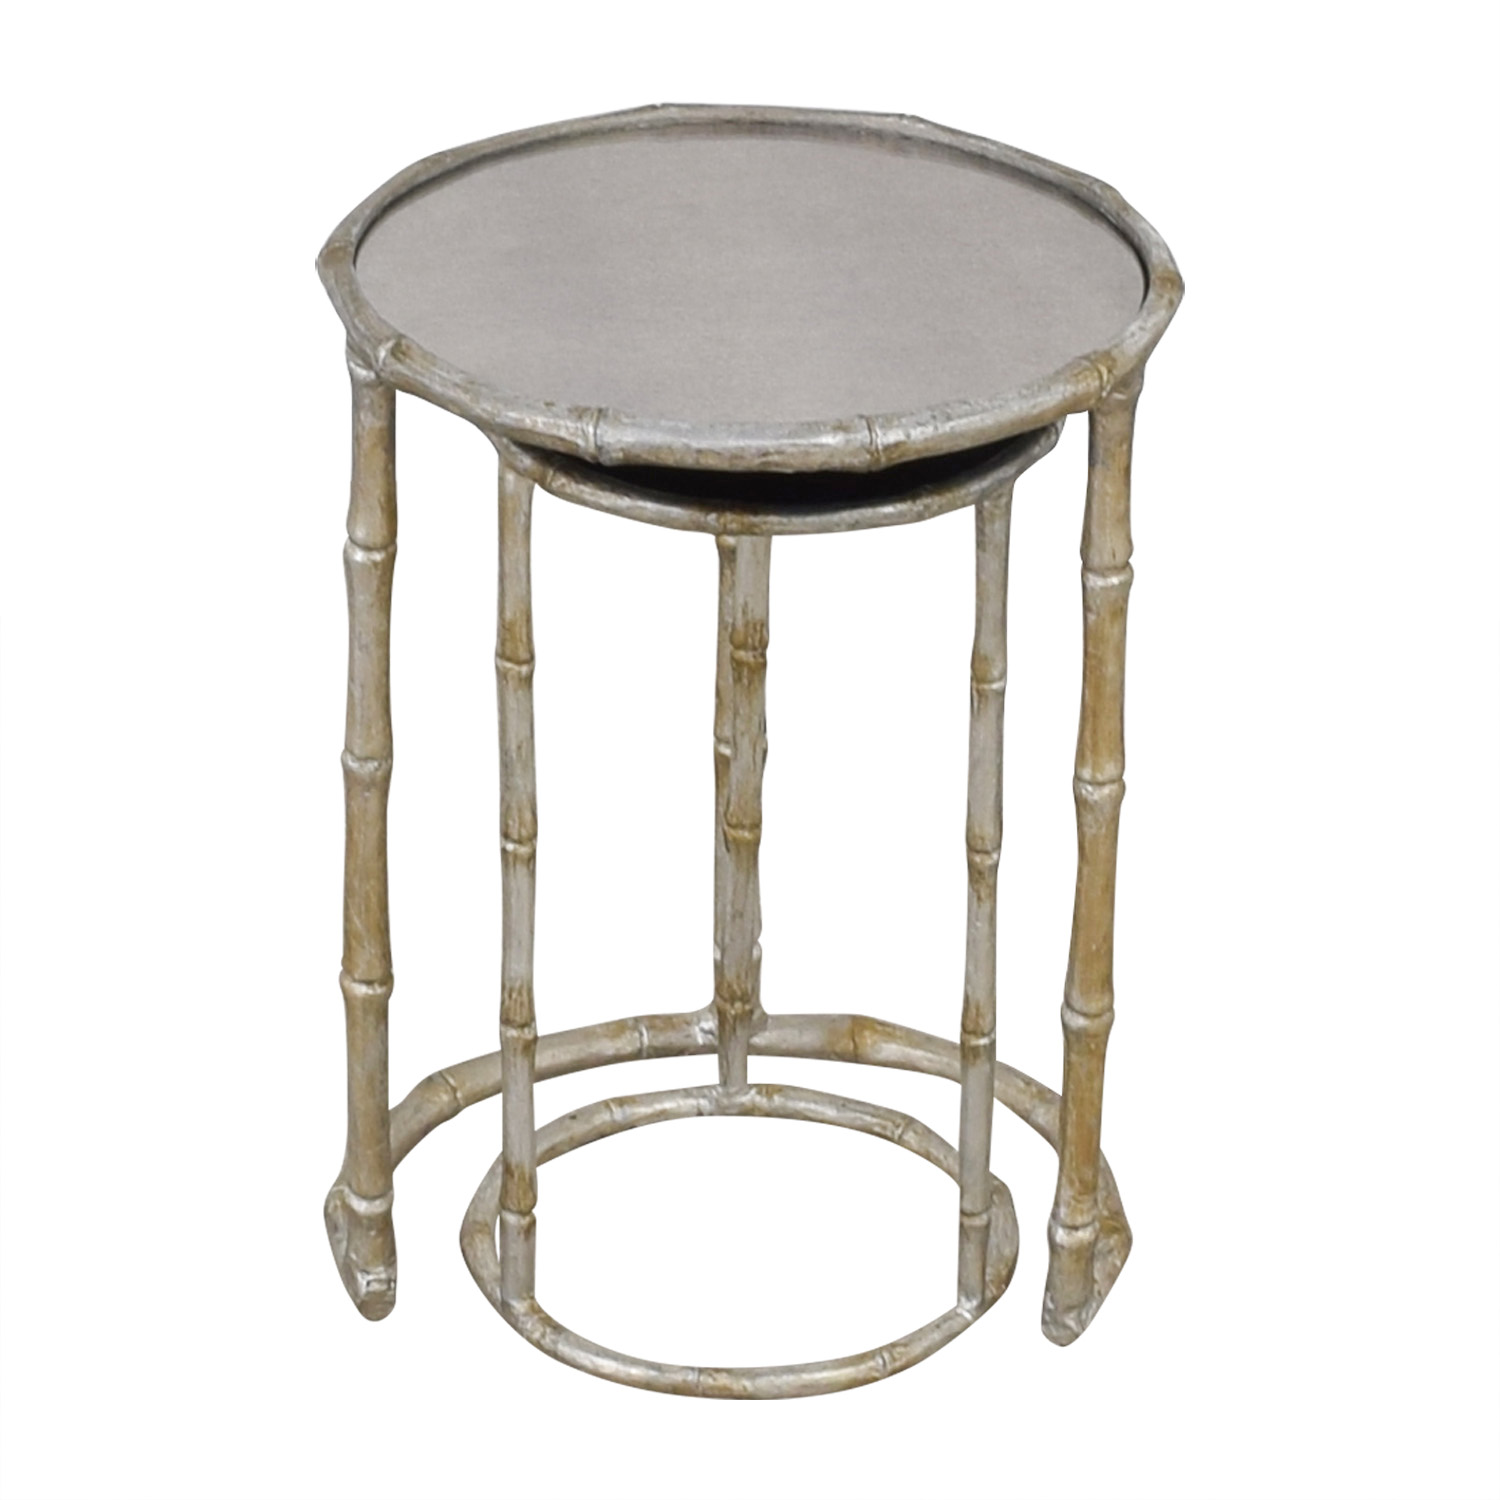 Millie Raes Millie Raes Bamboo Round Mirrored Nesting Tables second hand